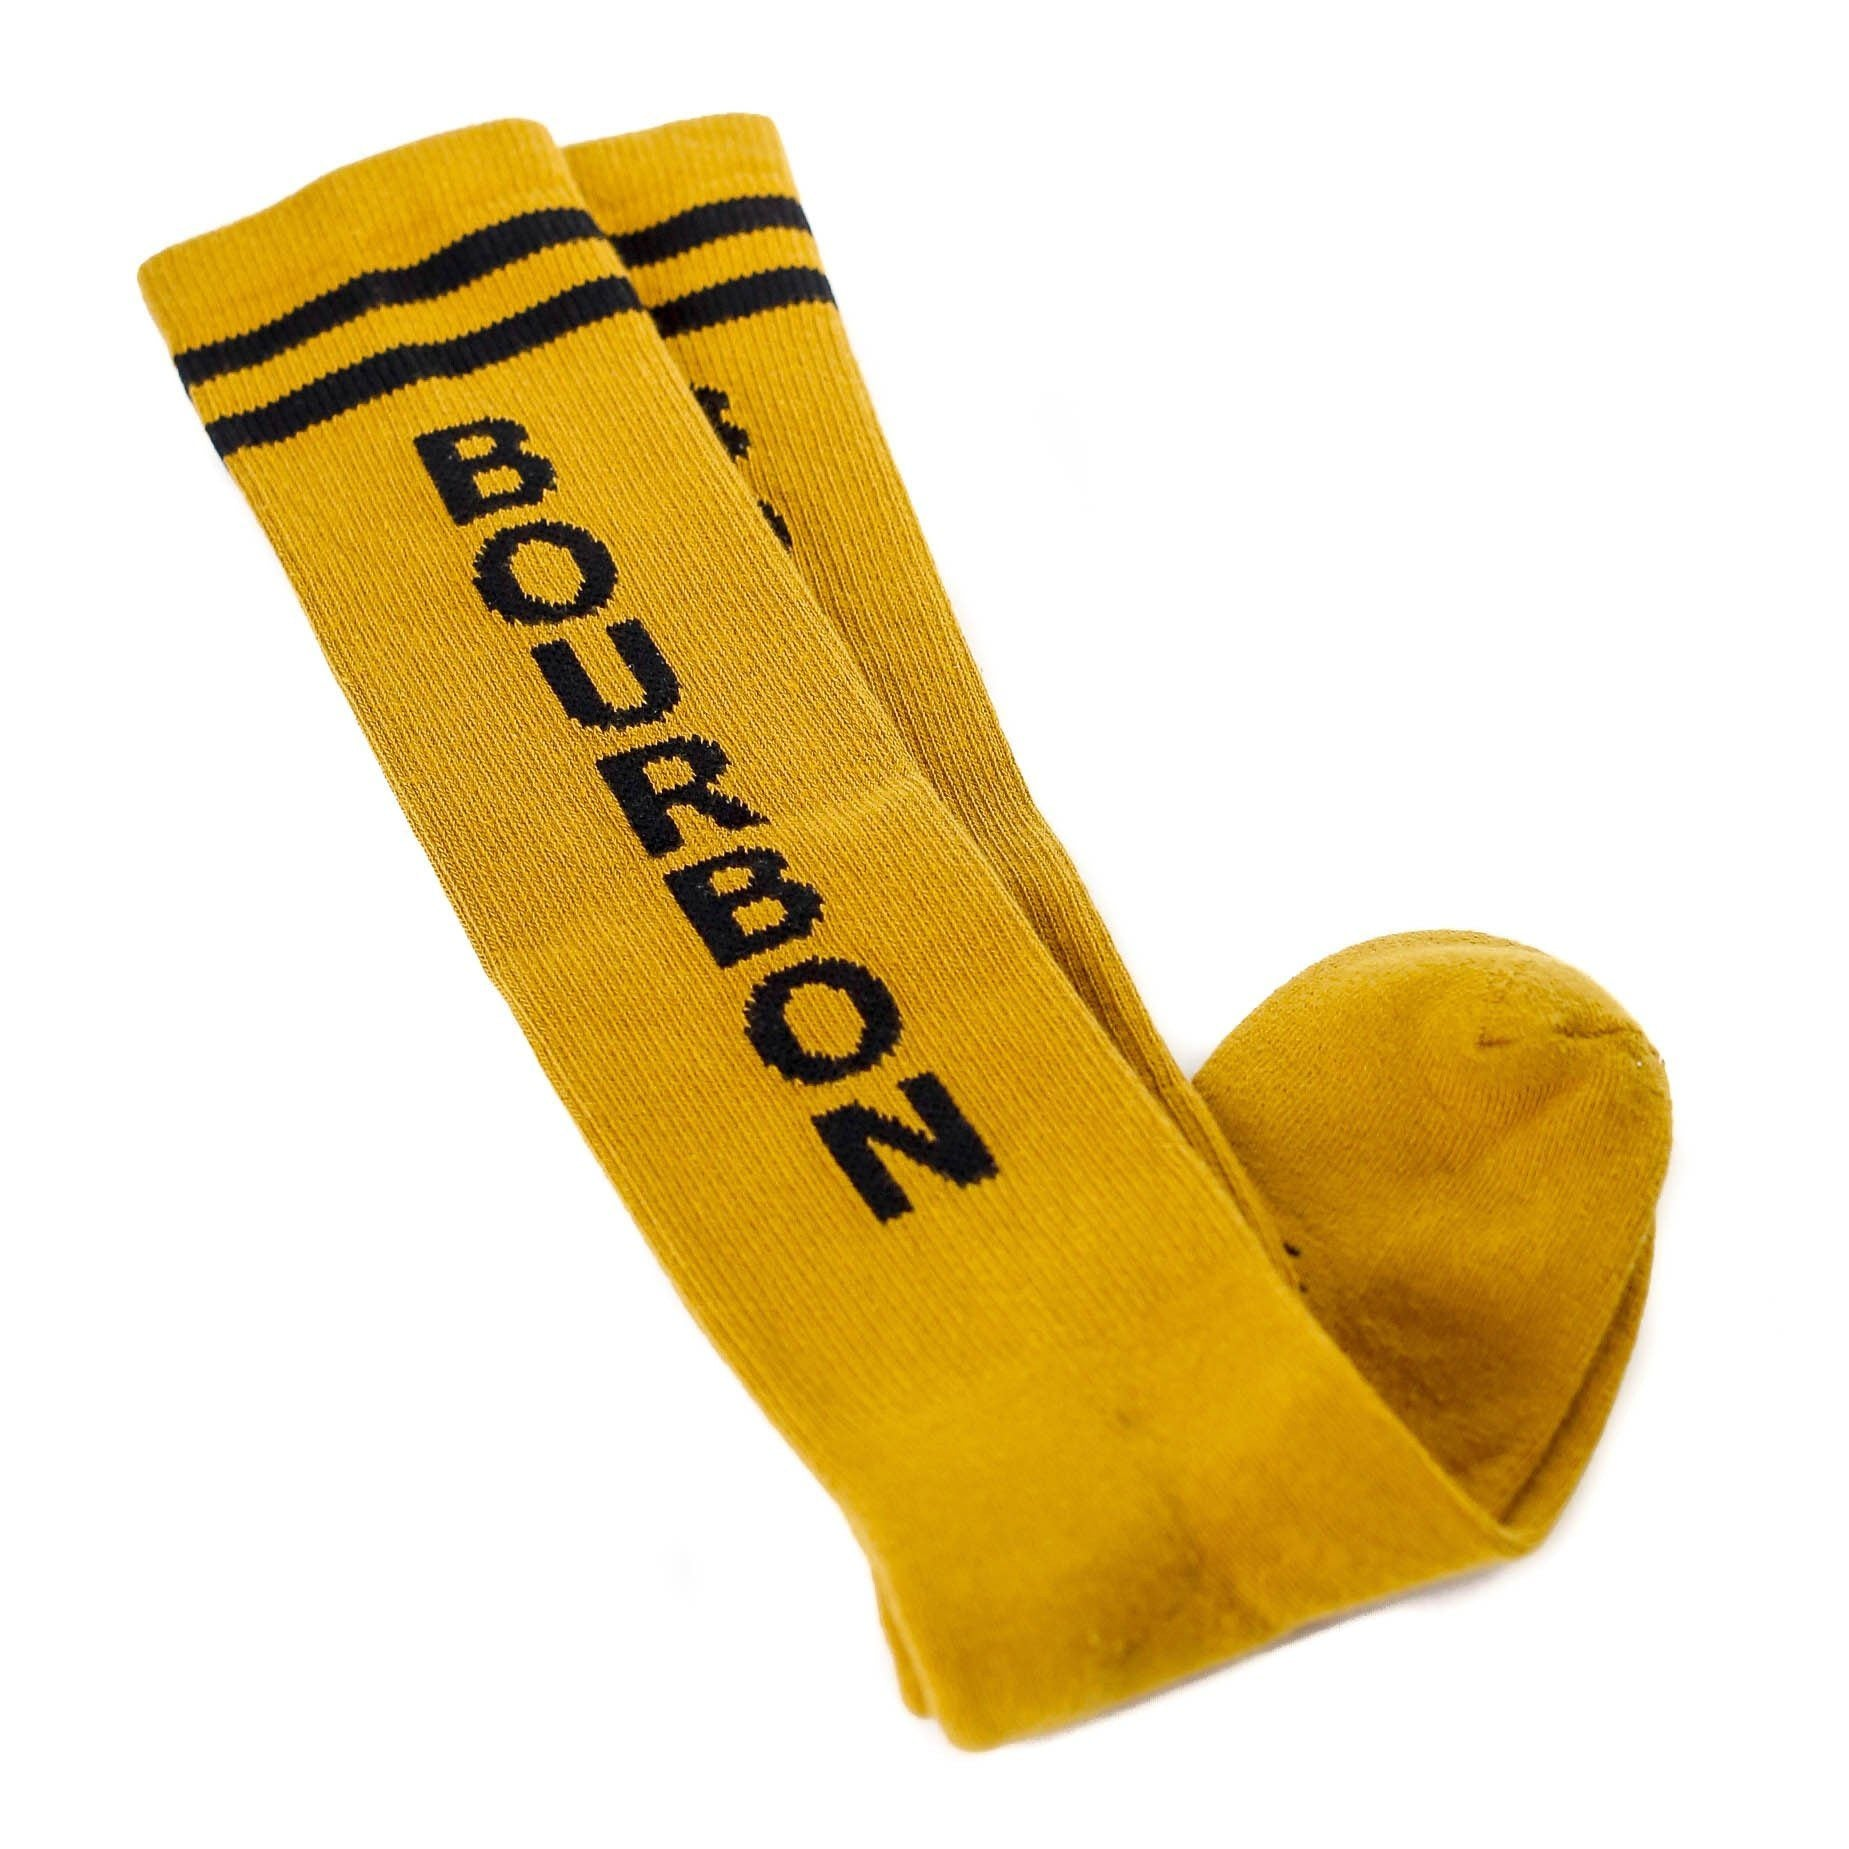 Bourbon Socks (Knee-Length) - Bourbon Outfitter